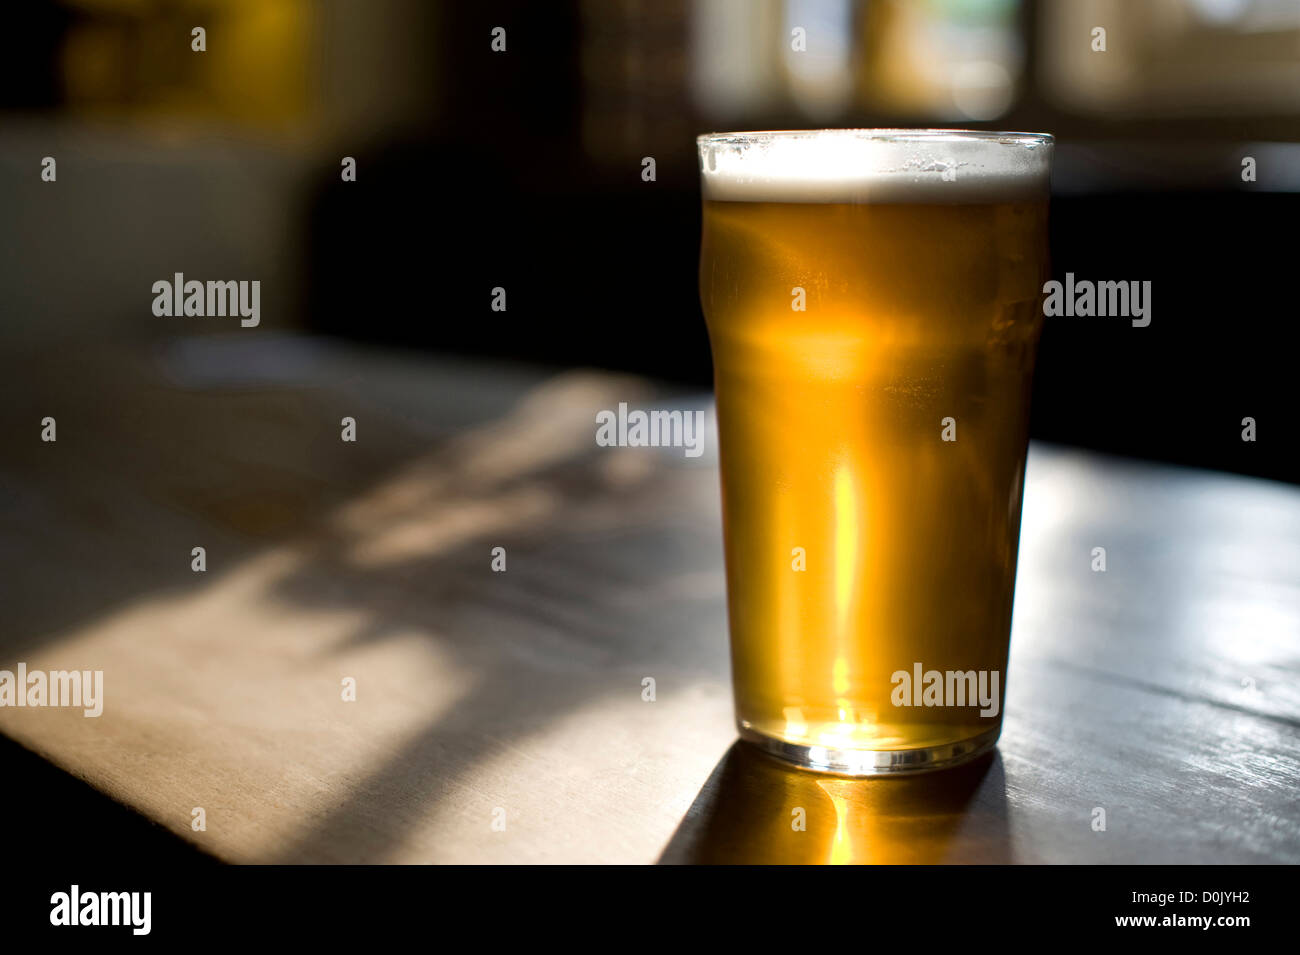 The sun shines through a golden pint of real ale. - Stock Image